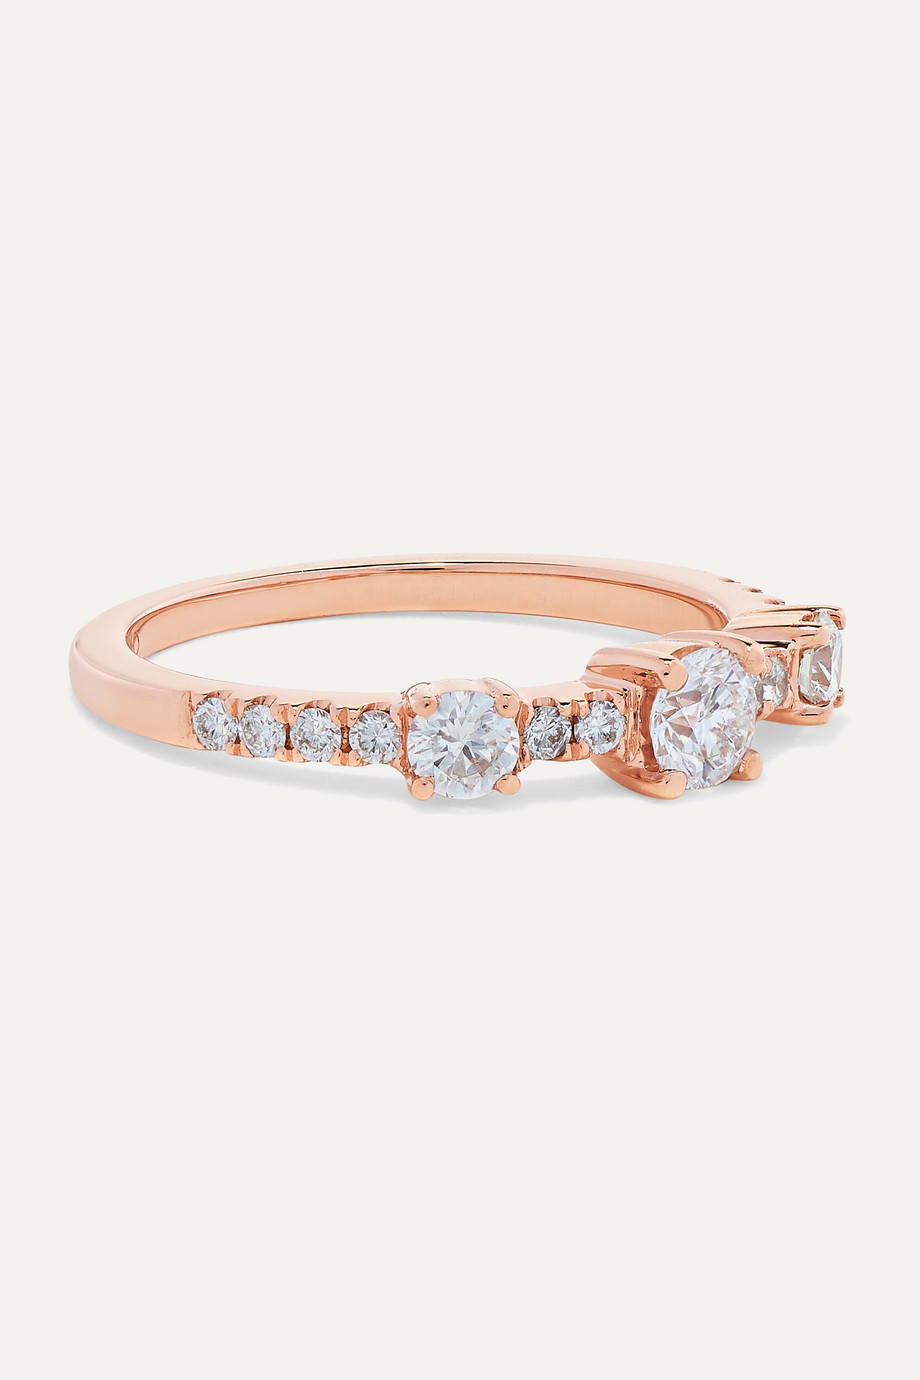 Anita Ko Collins 18-karat rose gold diamond ring